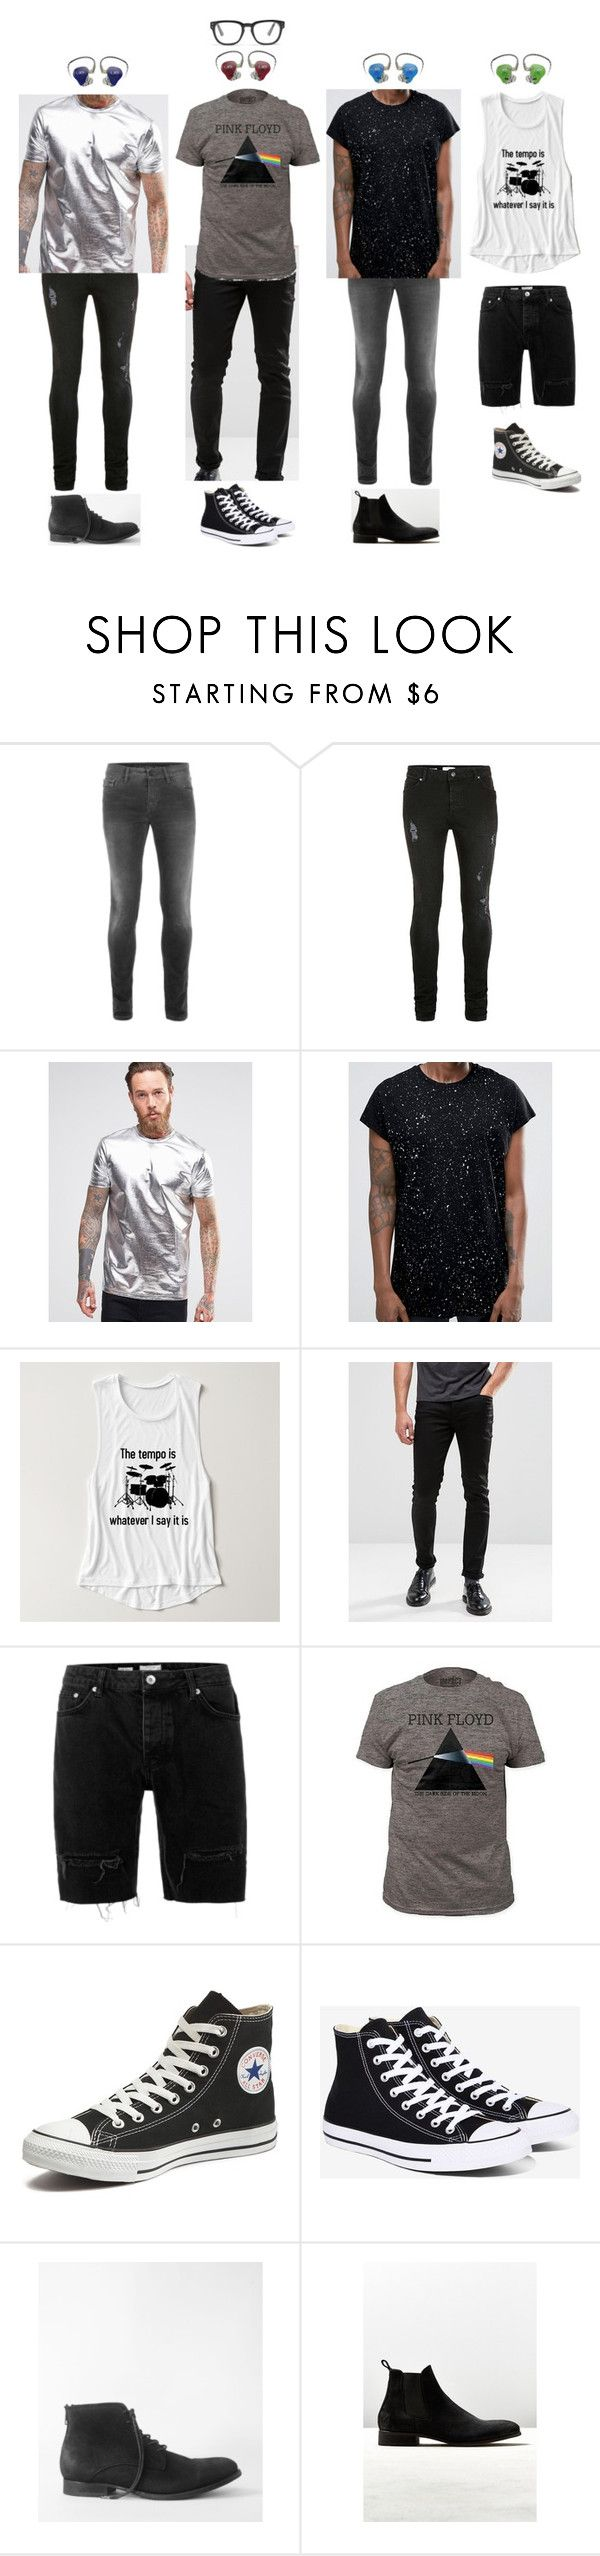 """""""Milan, Italy - 8.7.16"""" by gfc-account ❤ liked on Polyvore featuring Topman, ASOS, River Island, Converse, AllSaints, Shoe the Bear, Madewell, men's fashion and menswear"""